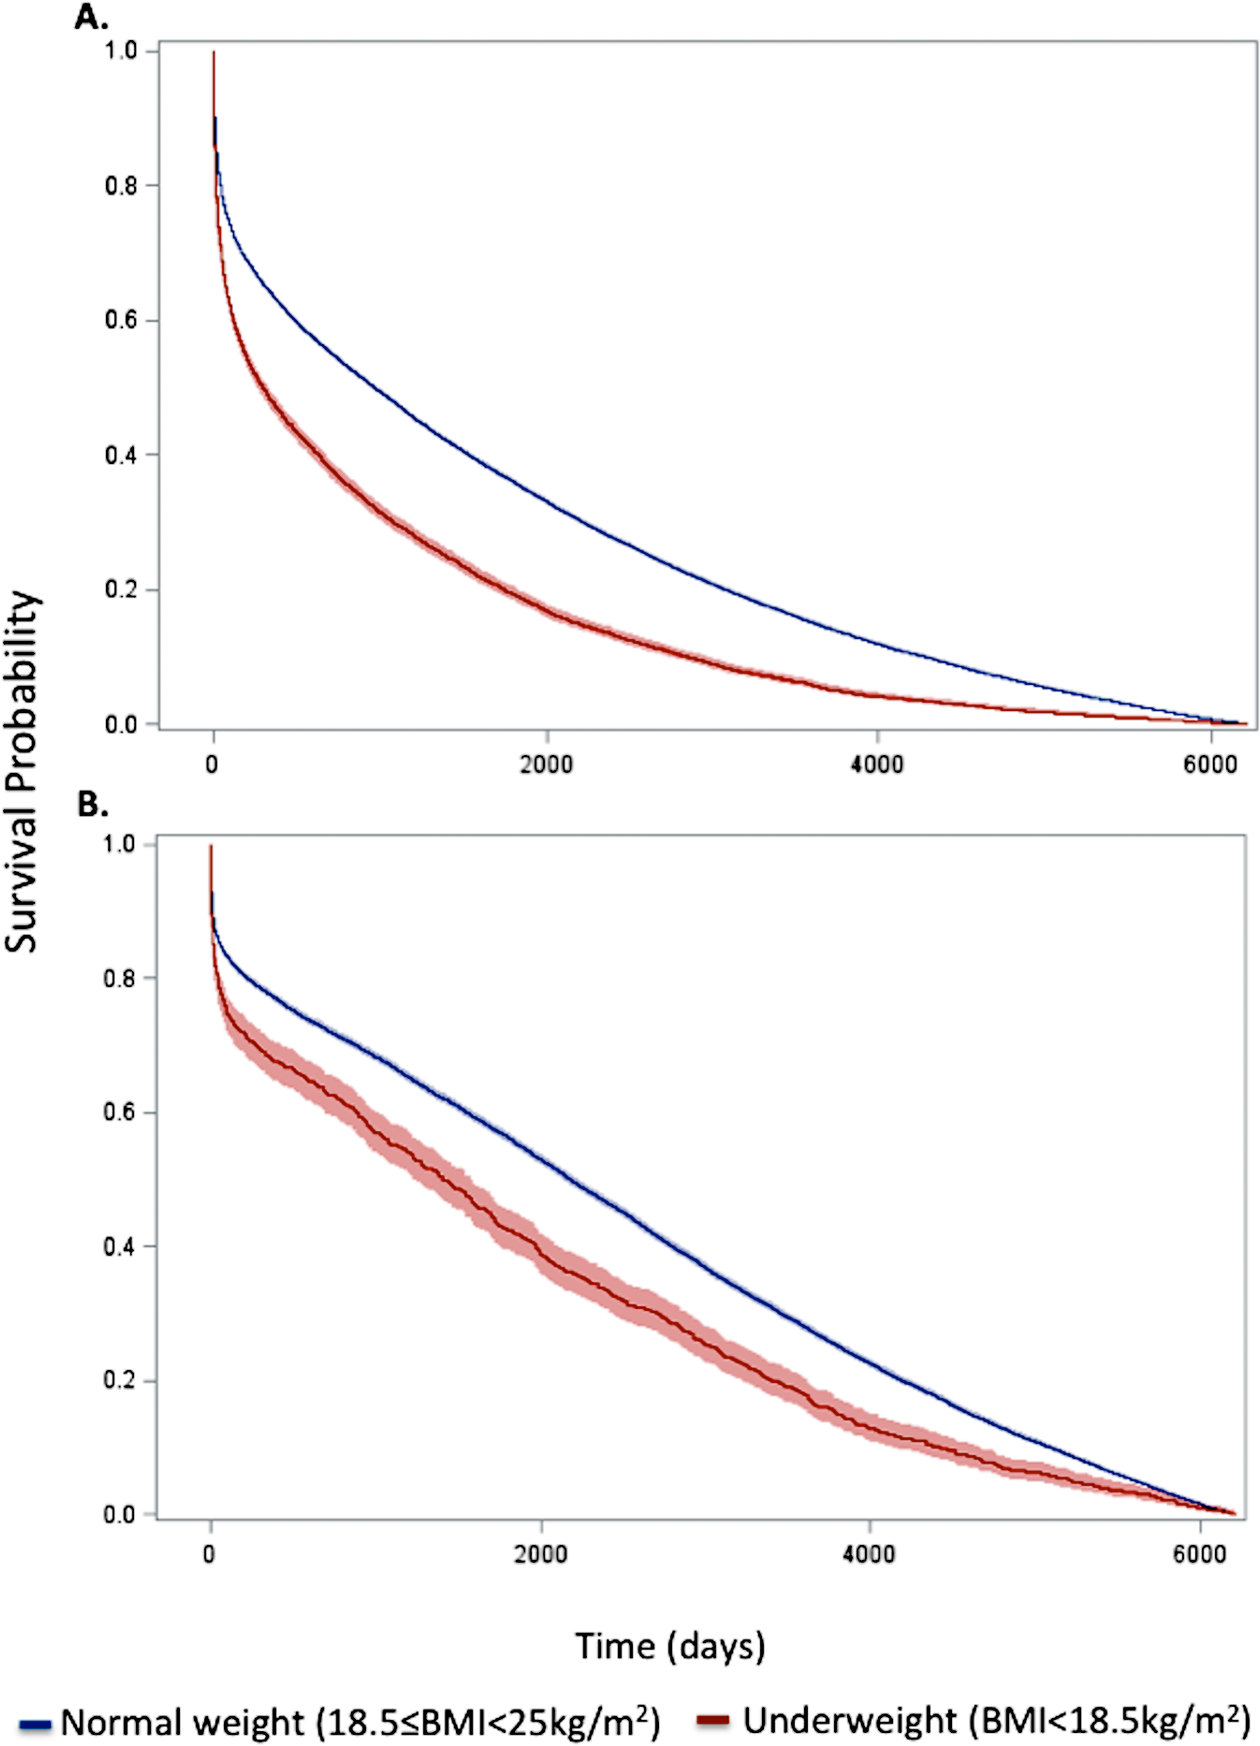 Kaplan–Meier survival curves for underweight and normal weight among all patients and the subset of patients without significant comorbidity or frailty.